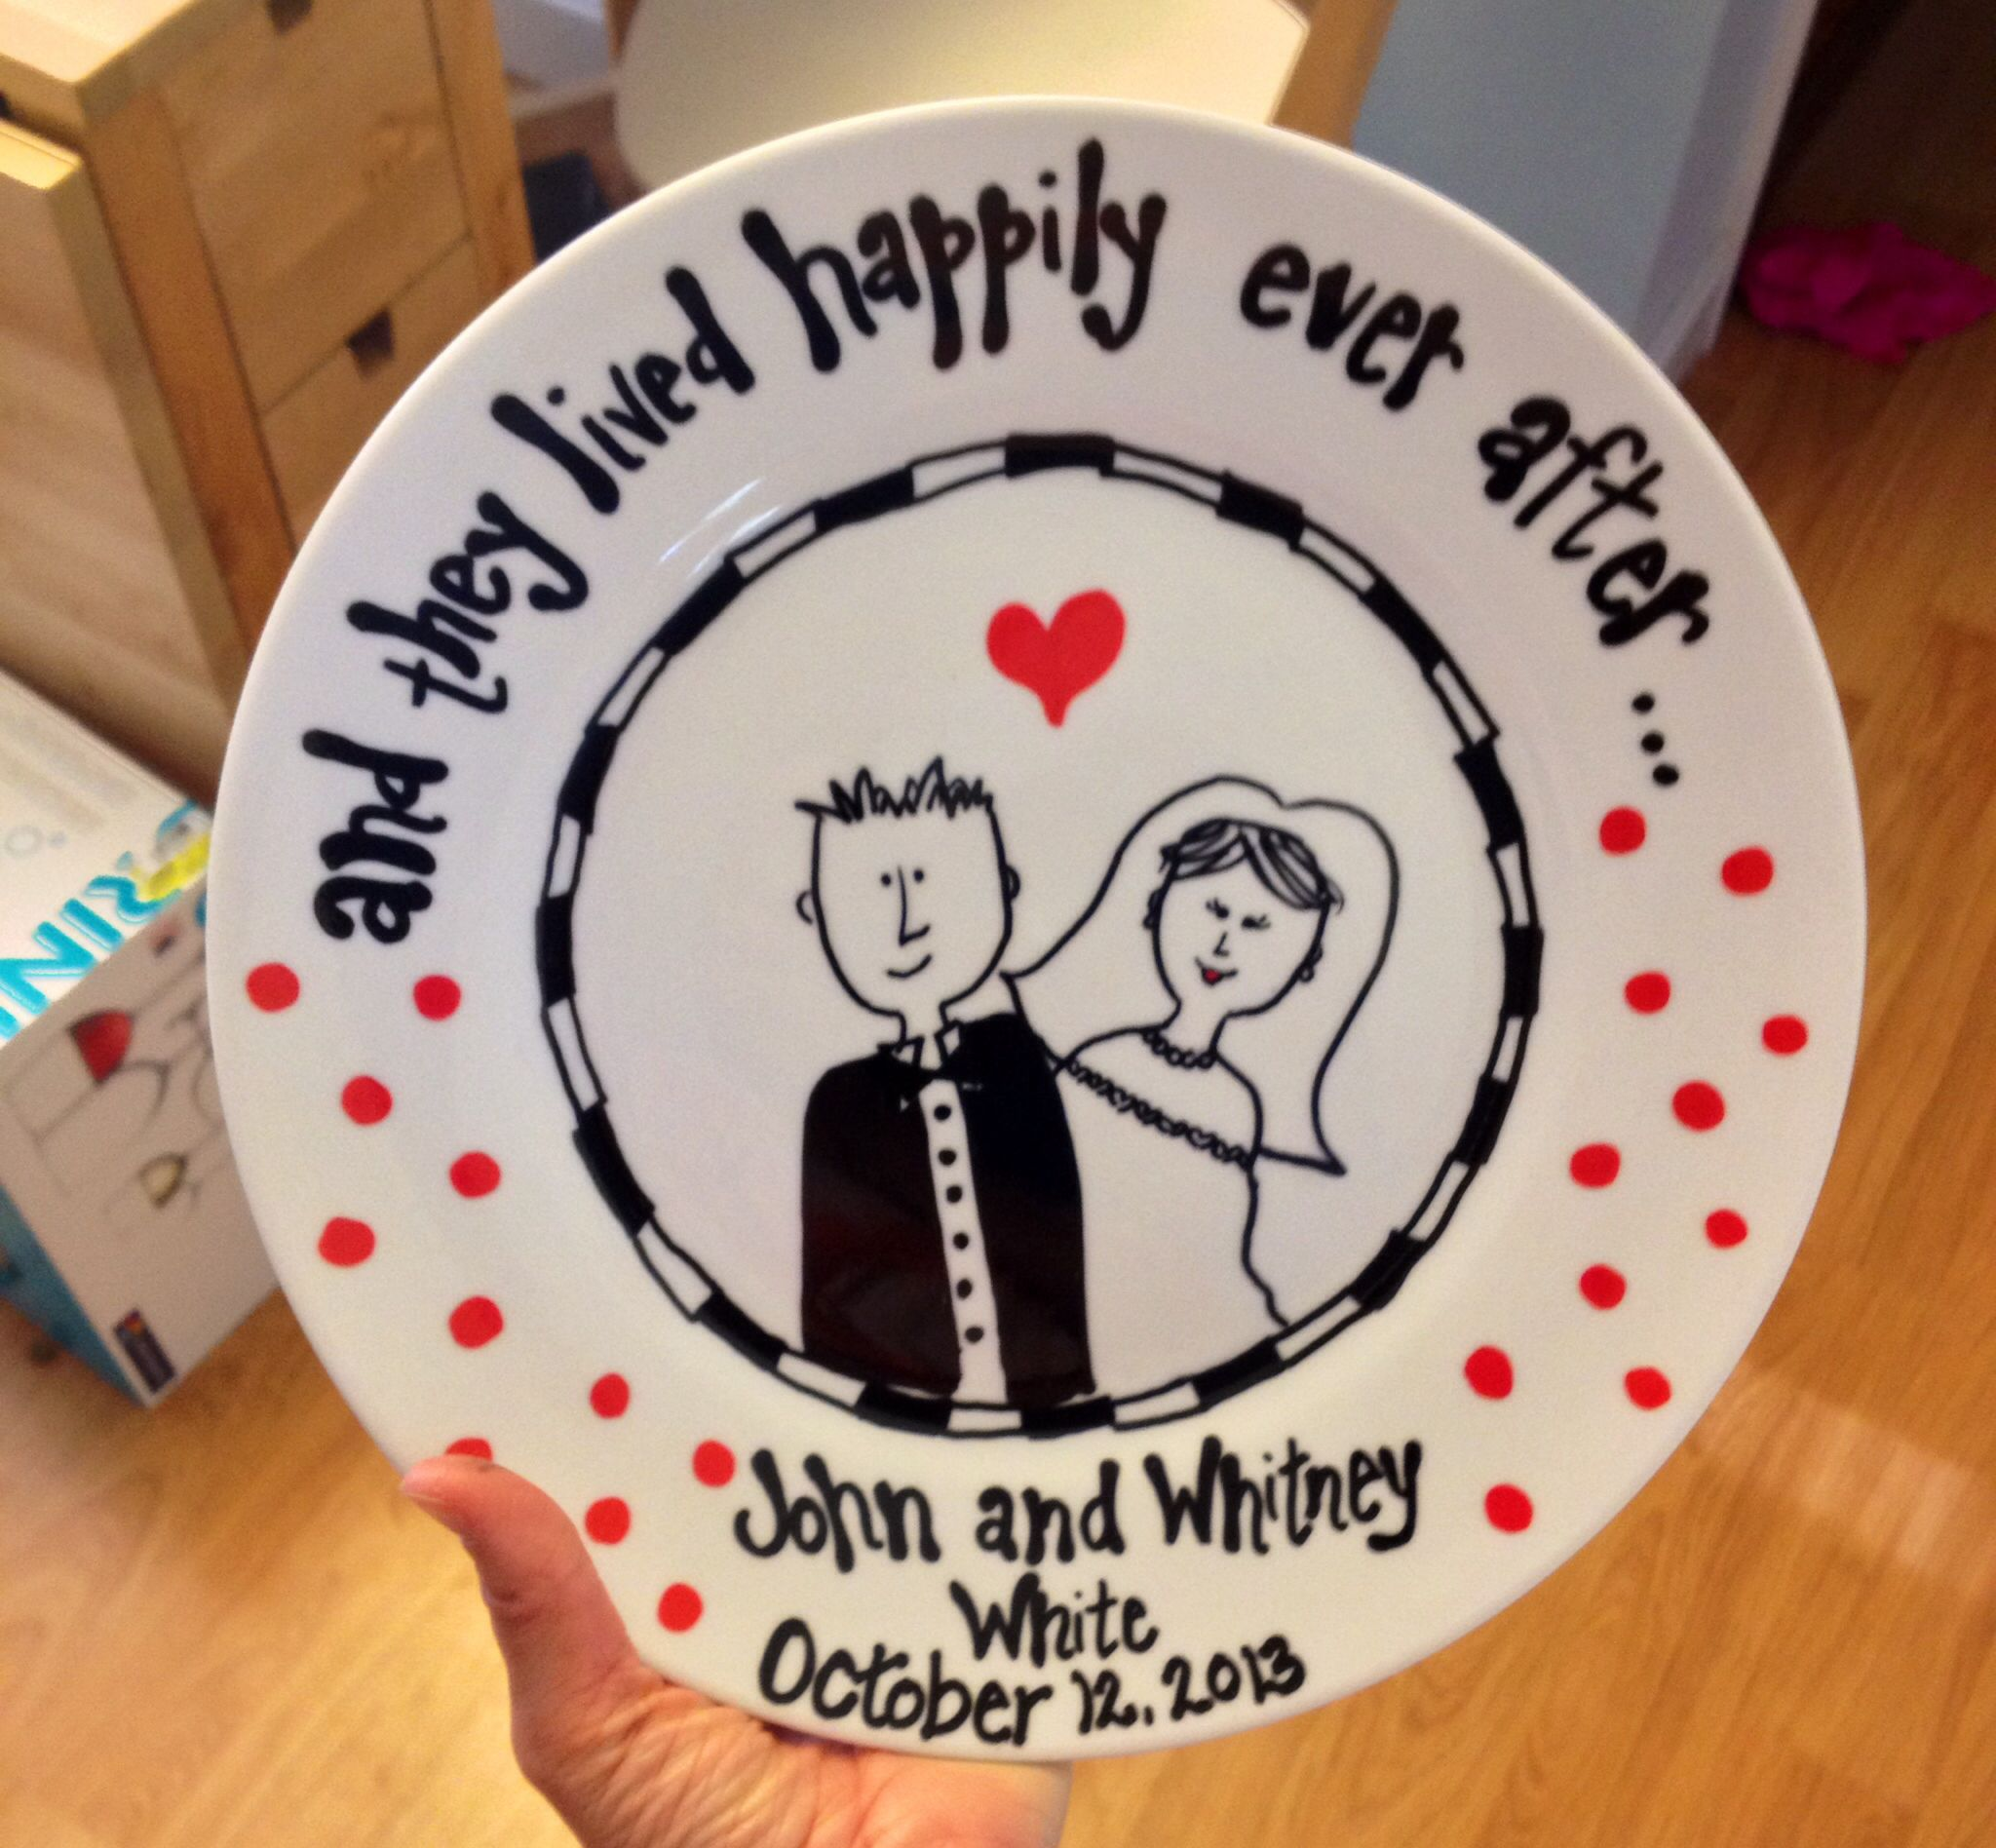 Wedding gift, would be cute DIY from kids! Cute ideas